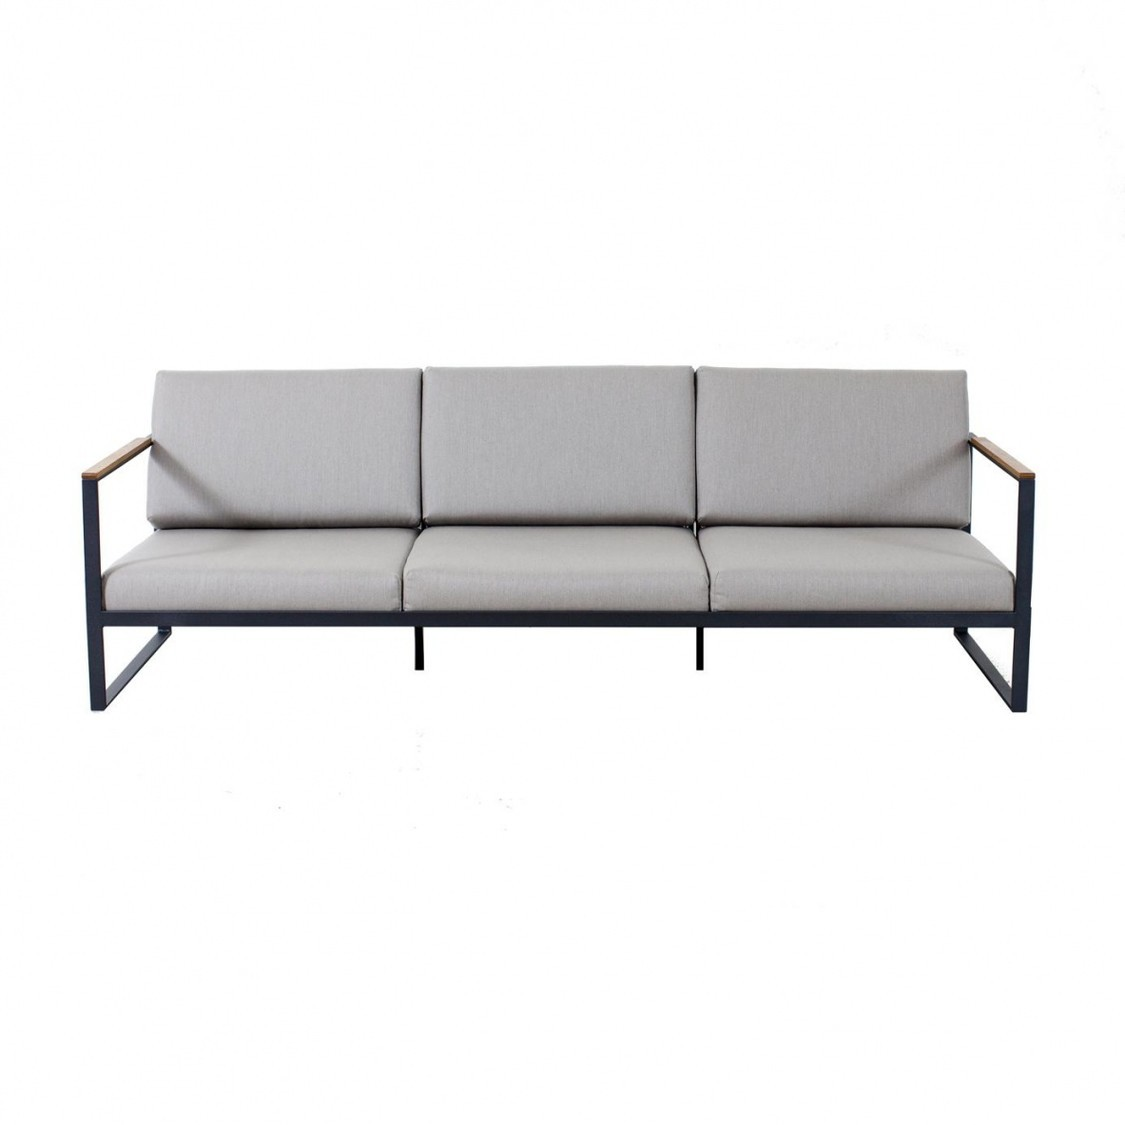 r shults garden easy 3 sitzer sofa ambientedirect. Black Bedroom Furniture Sets. Home Design Ideas